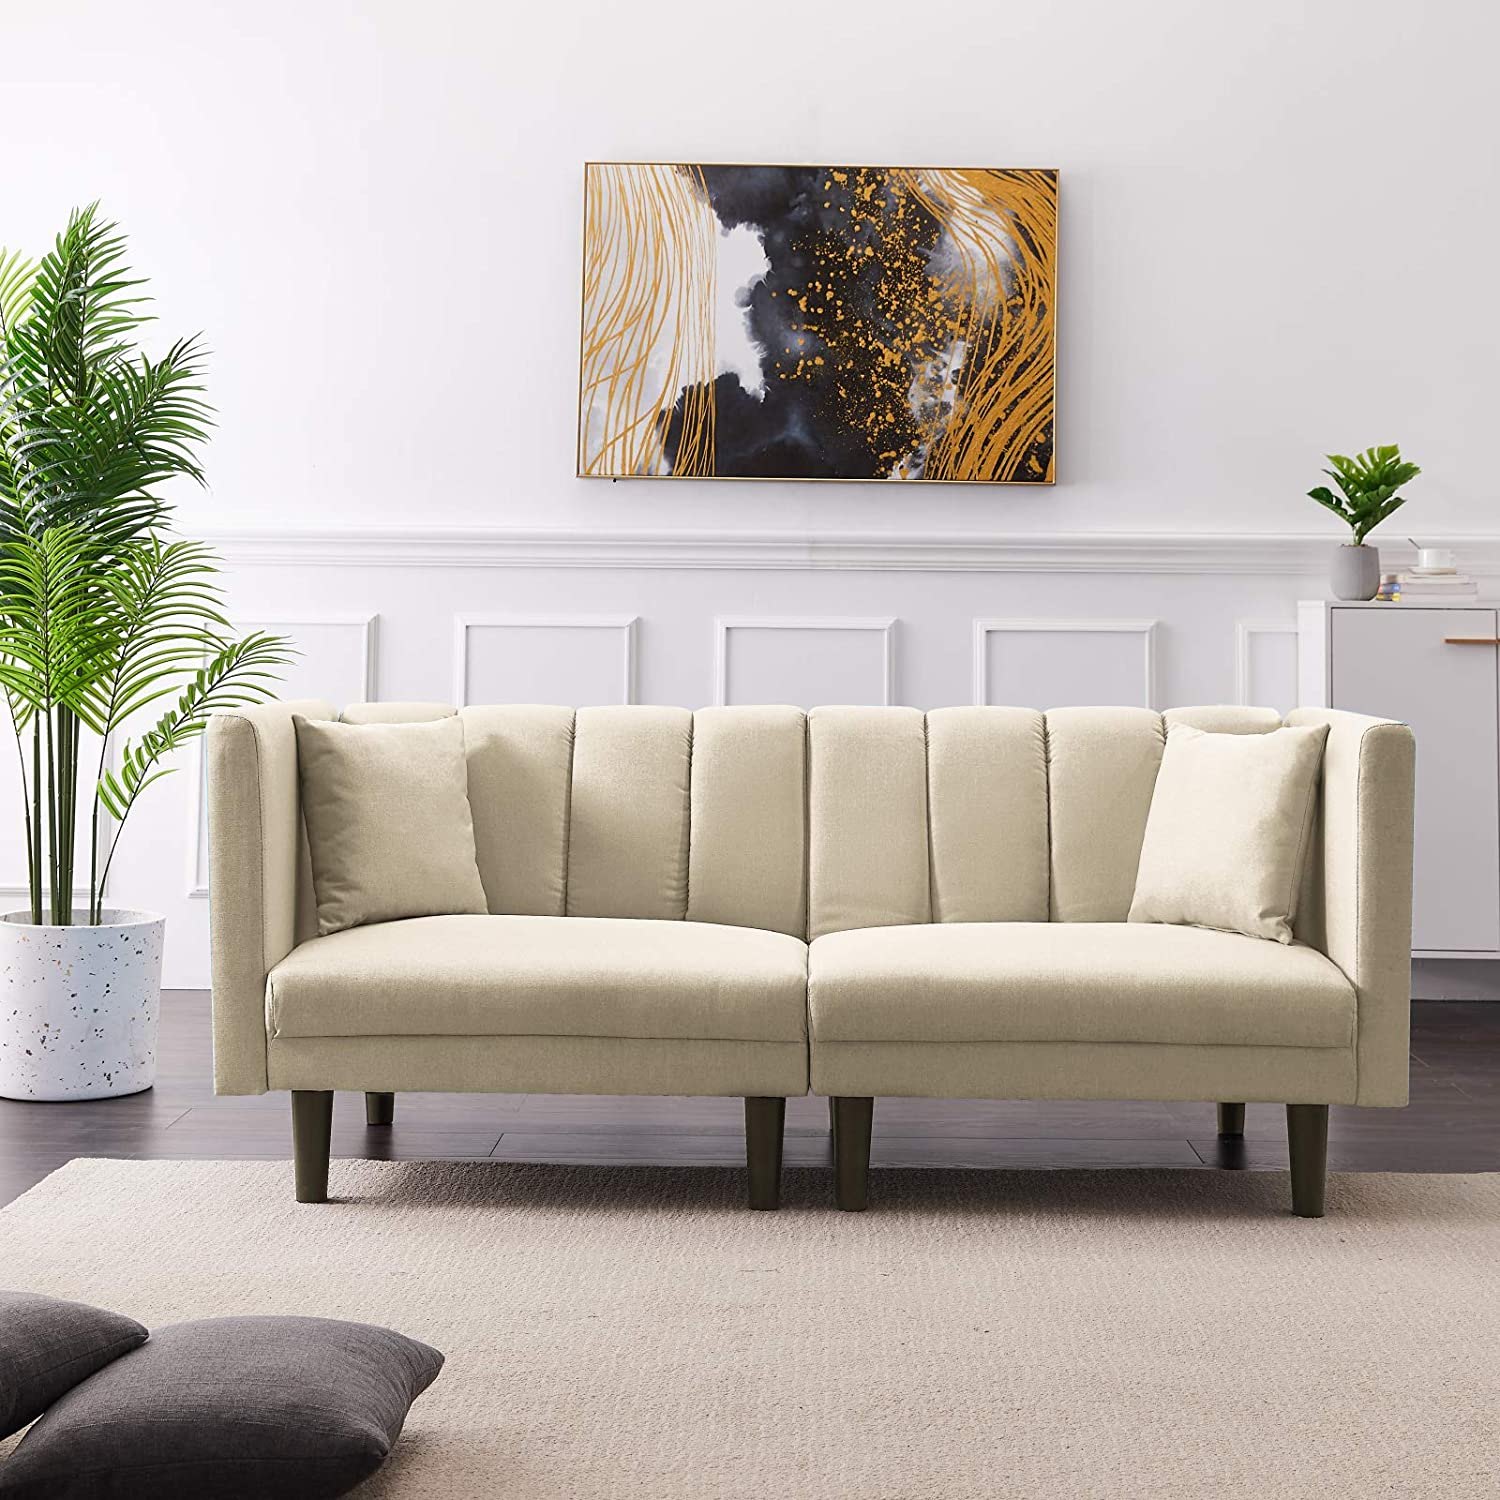 Sectional Couch Futon Sleeper OFFicial shop Sofa Bed Convertible Loveseat Special sale item with